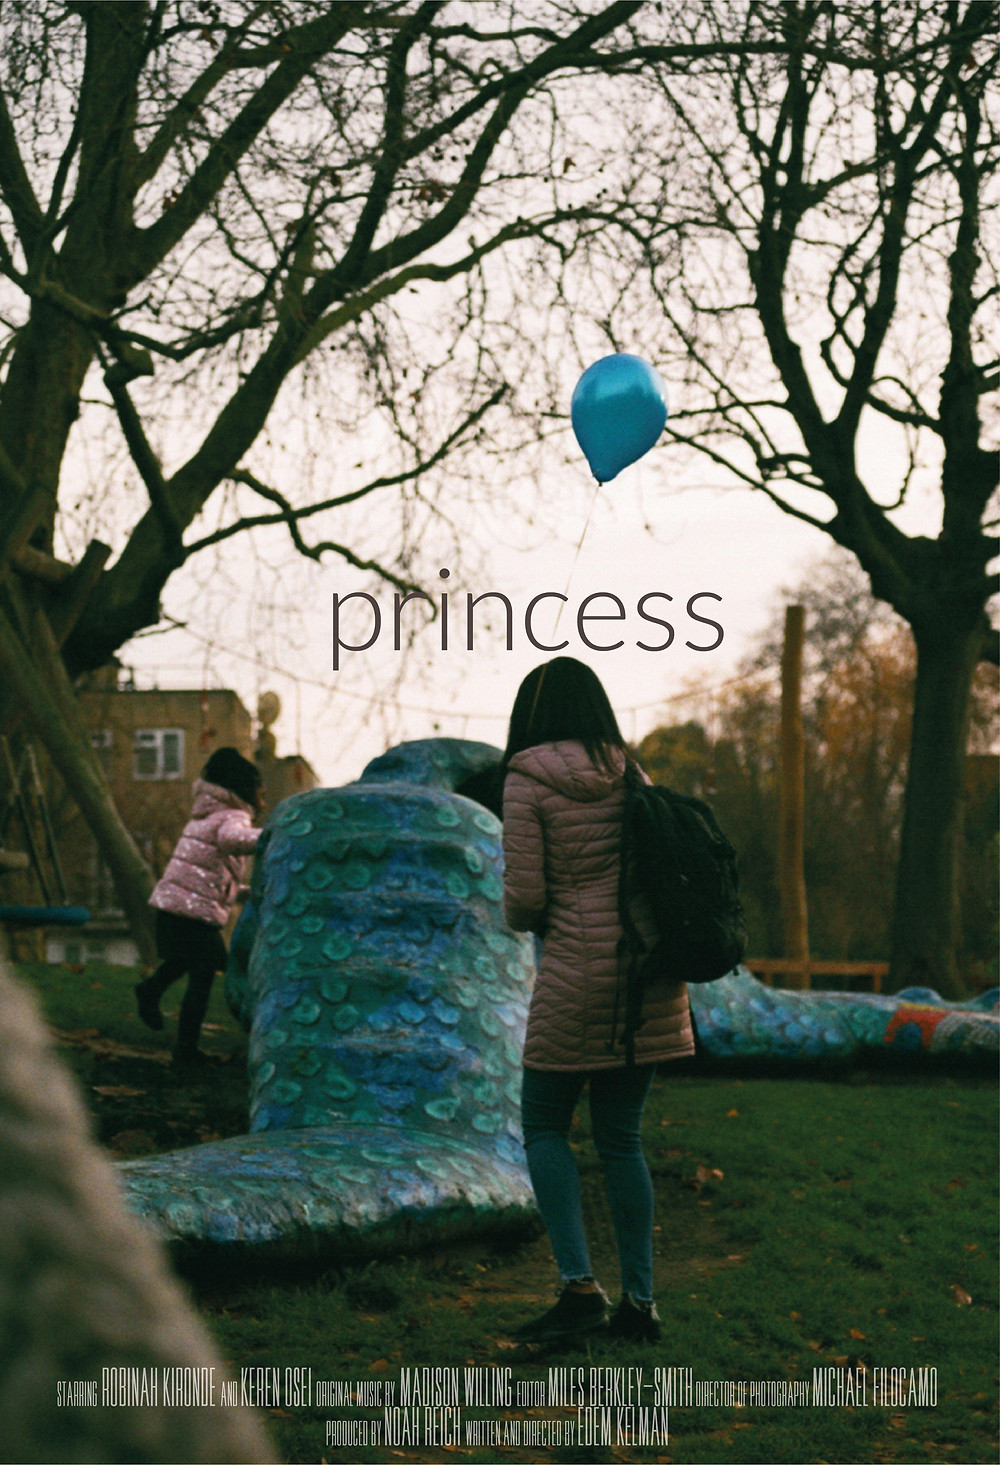 Poster for Princess showing protagonists in playground.